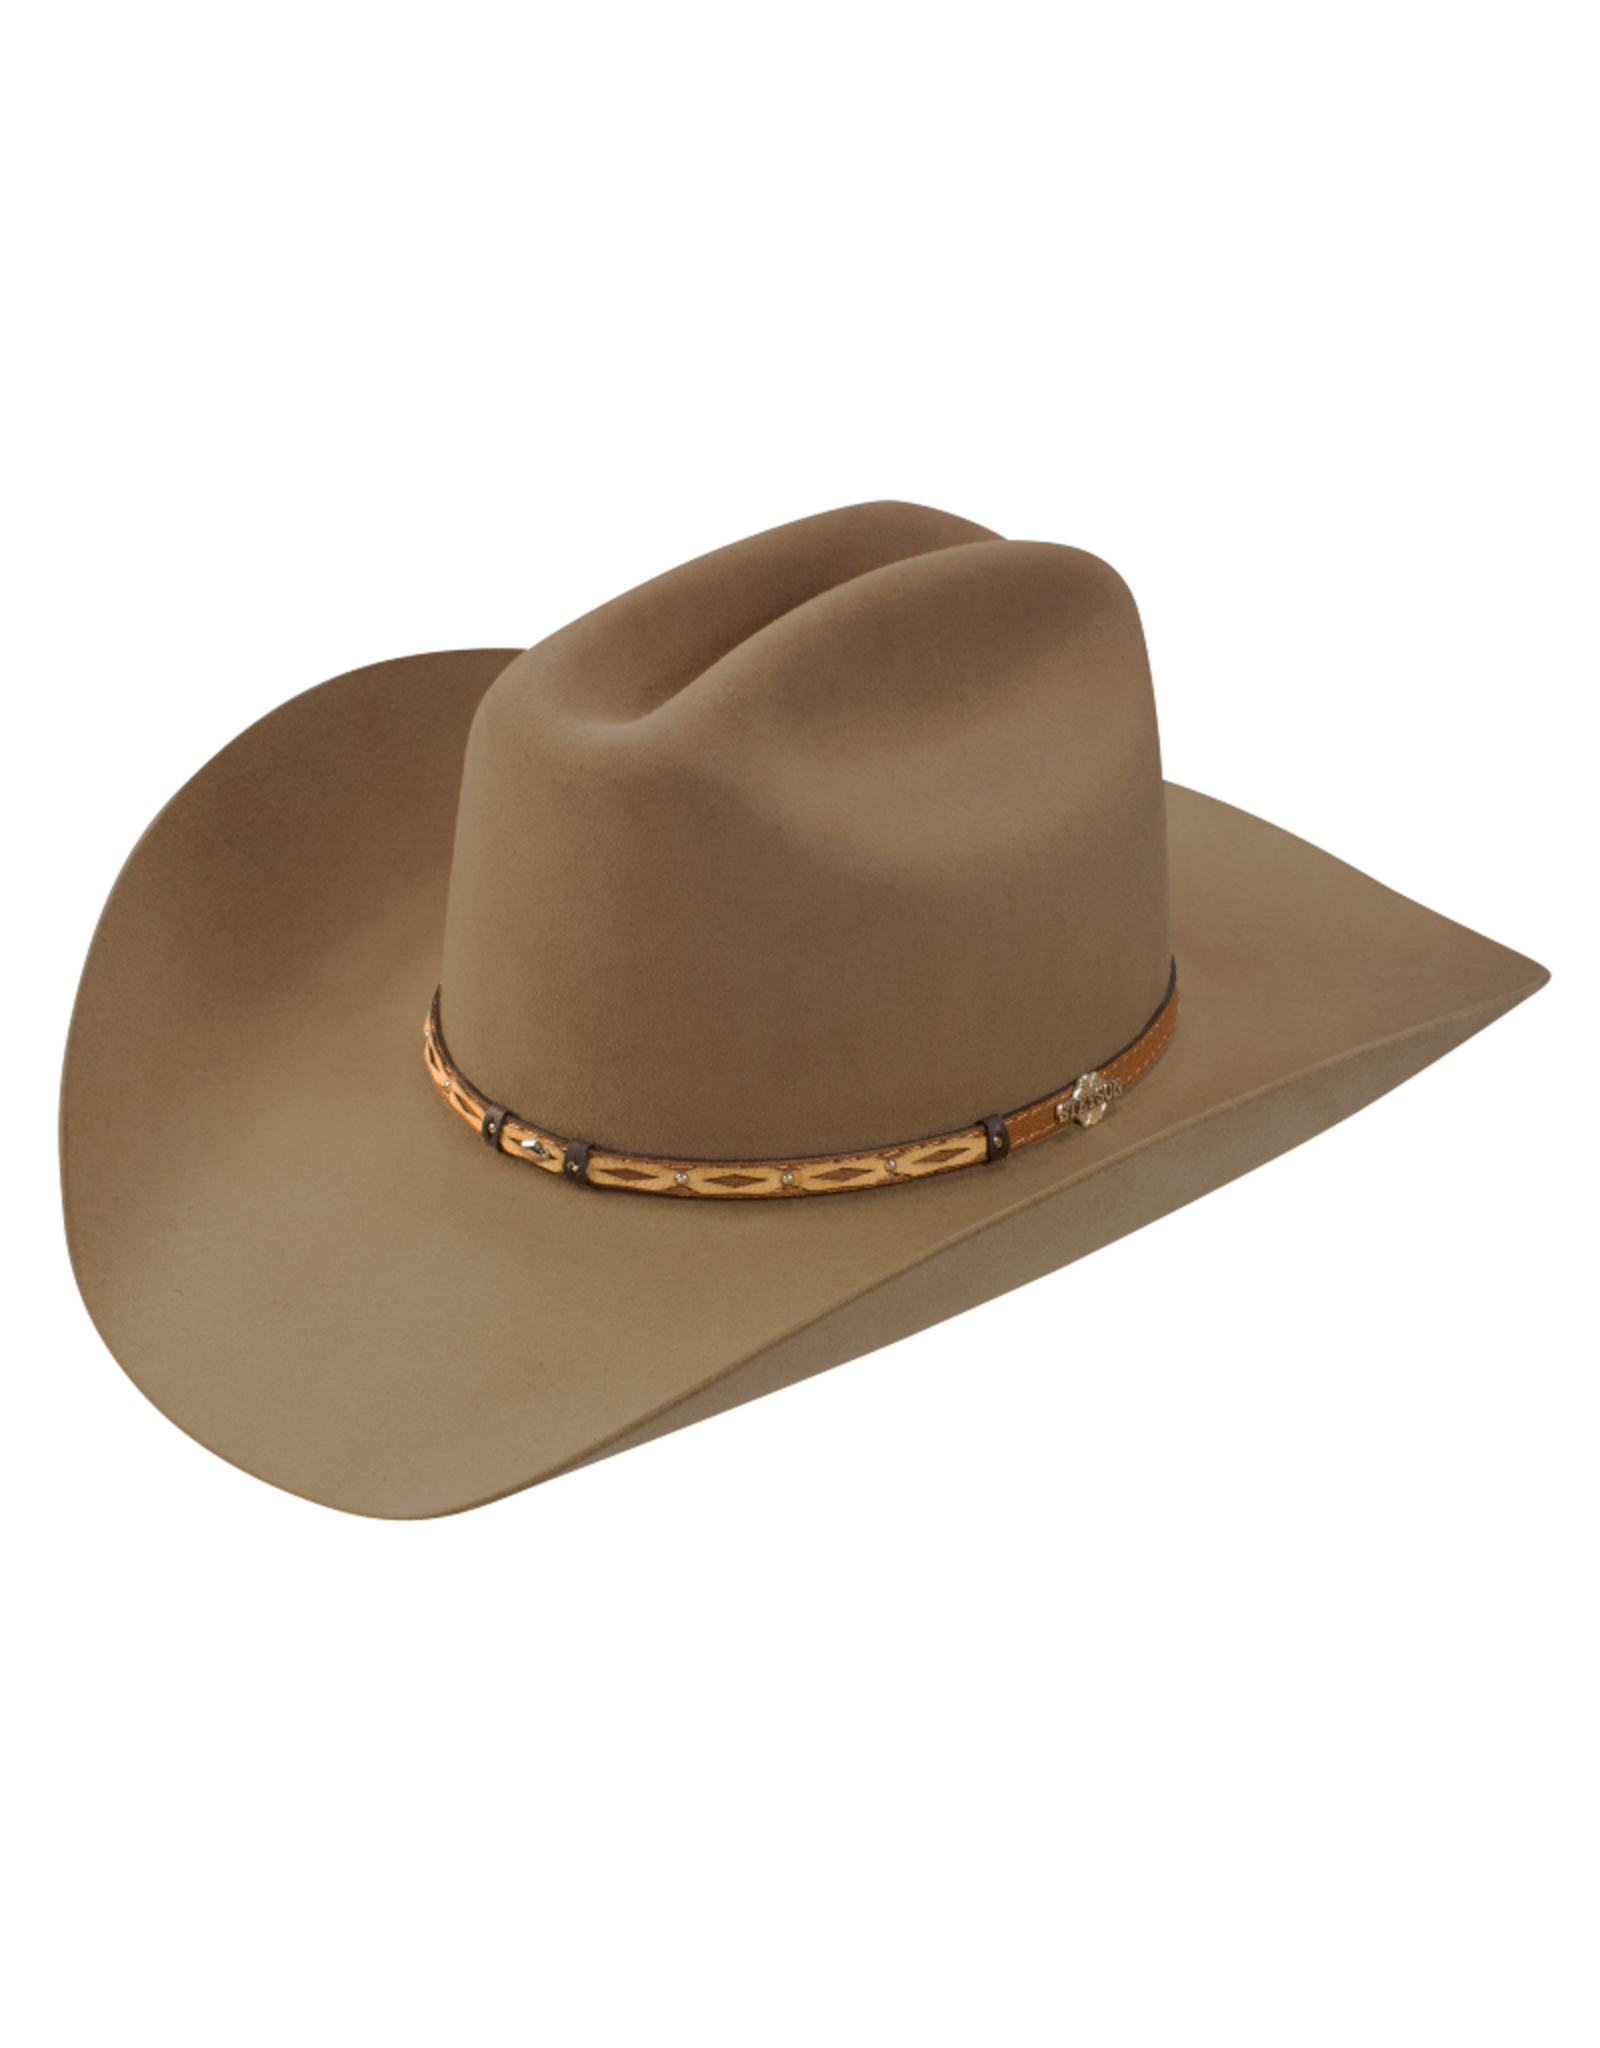 Stetson Hats Stetson Colfax 6X Hat New Frontier Collection